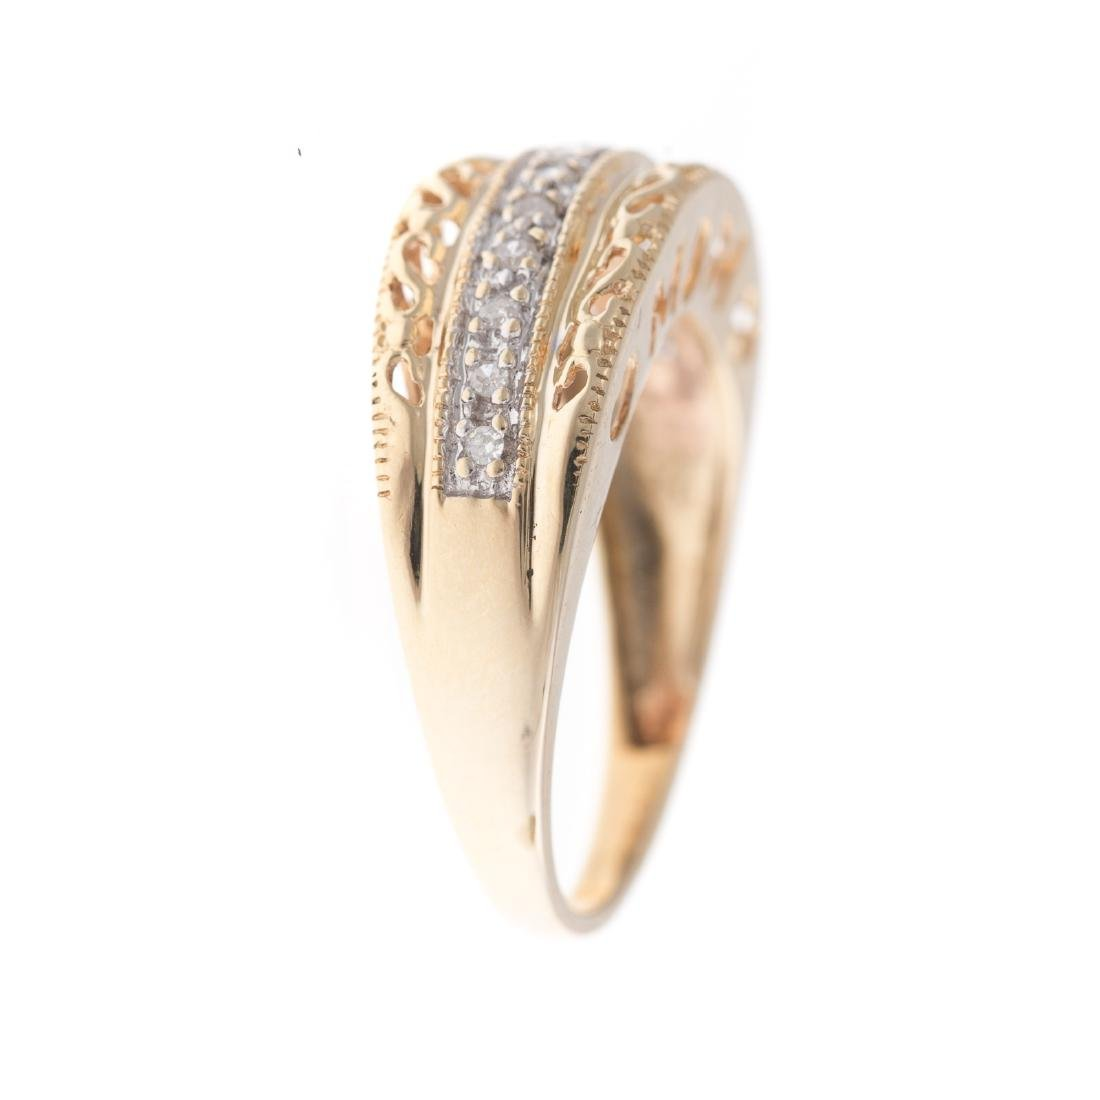 Two Lady's Diamond Rings in 10K Gold - 3